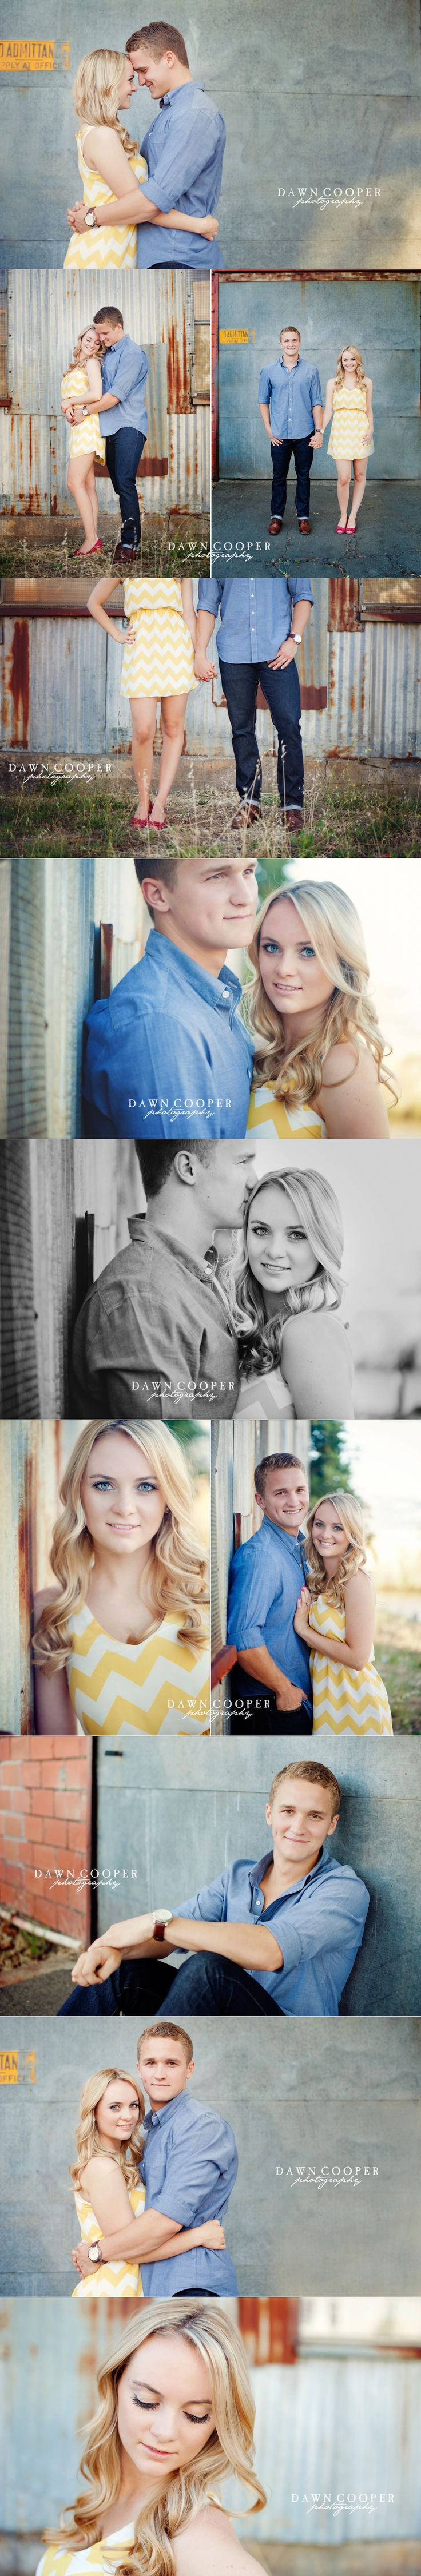 268 best Engagement and Romantic Couple graphy images on